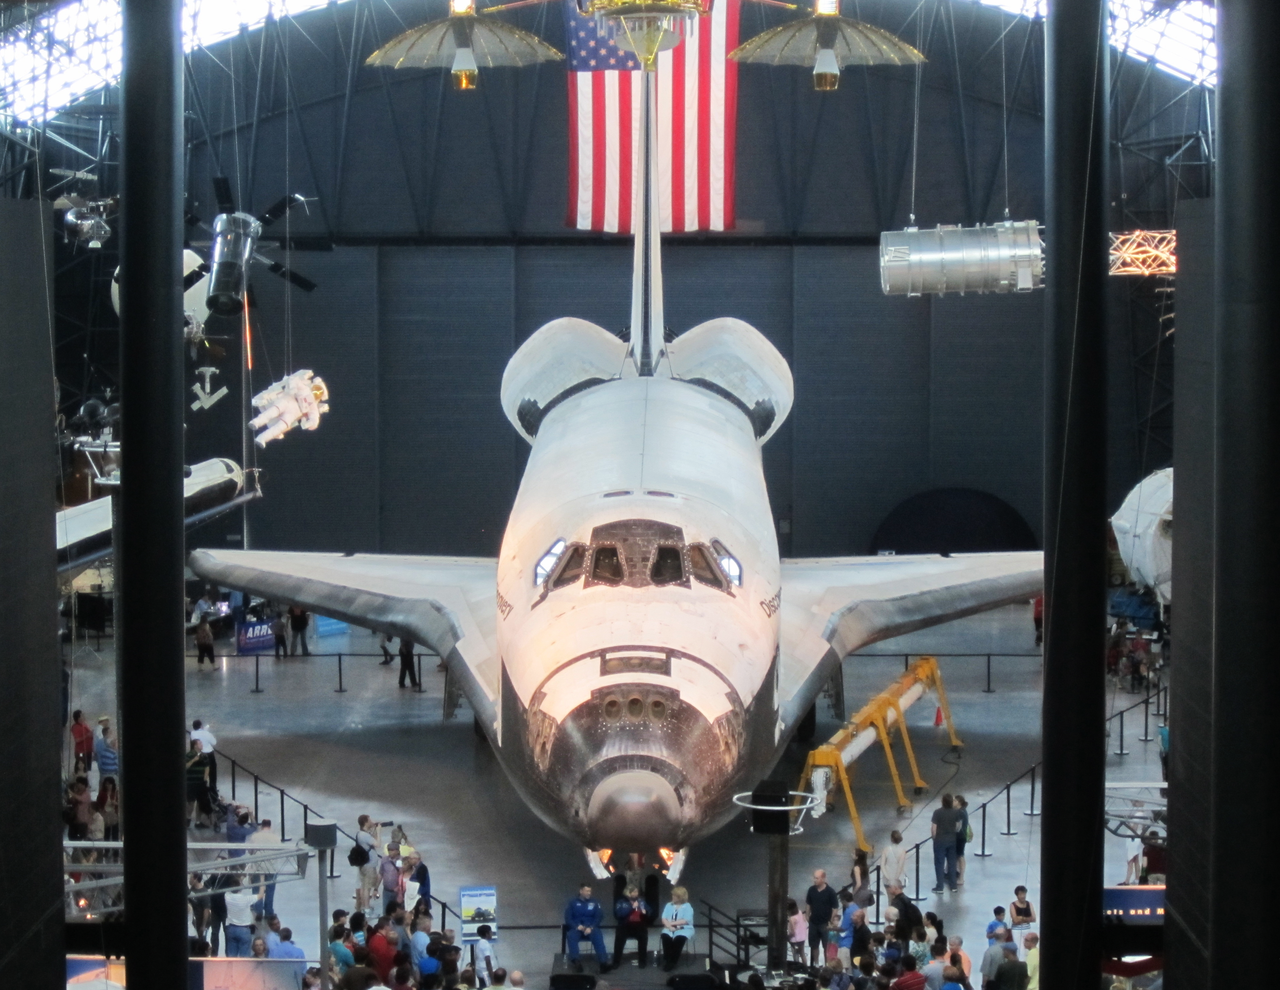 Space Shuttle Discovery at the Udvar Hazy museum